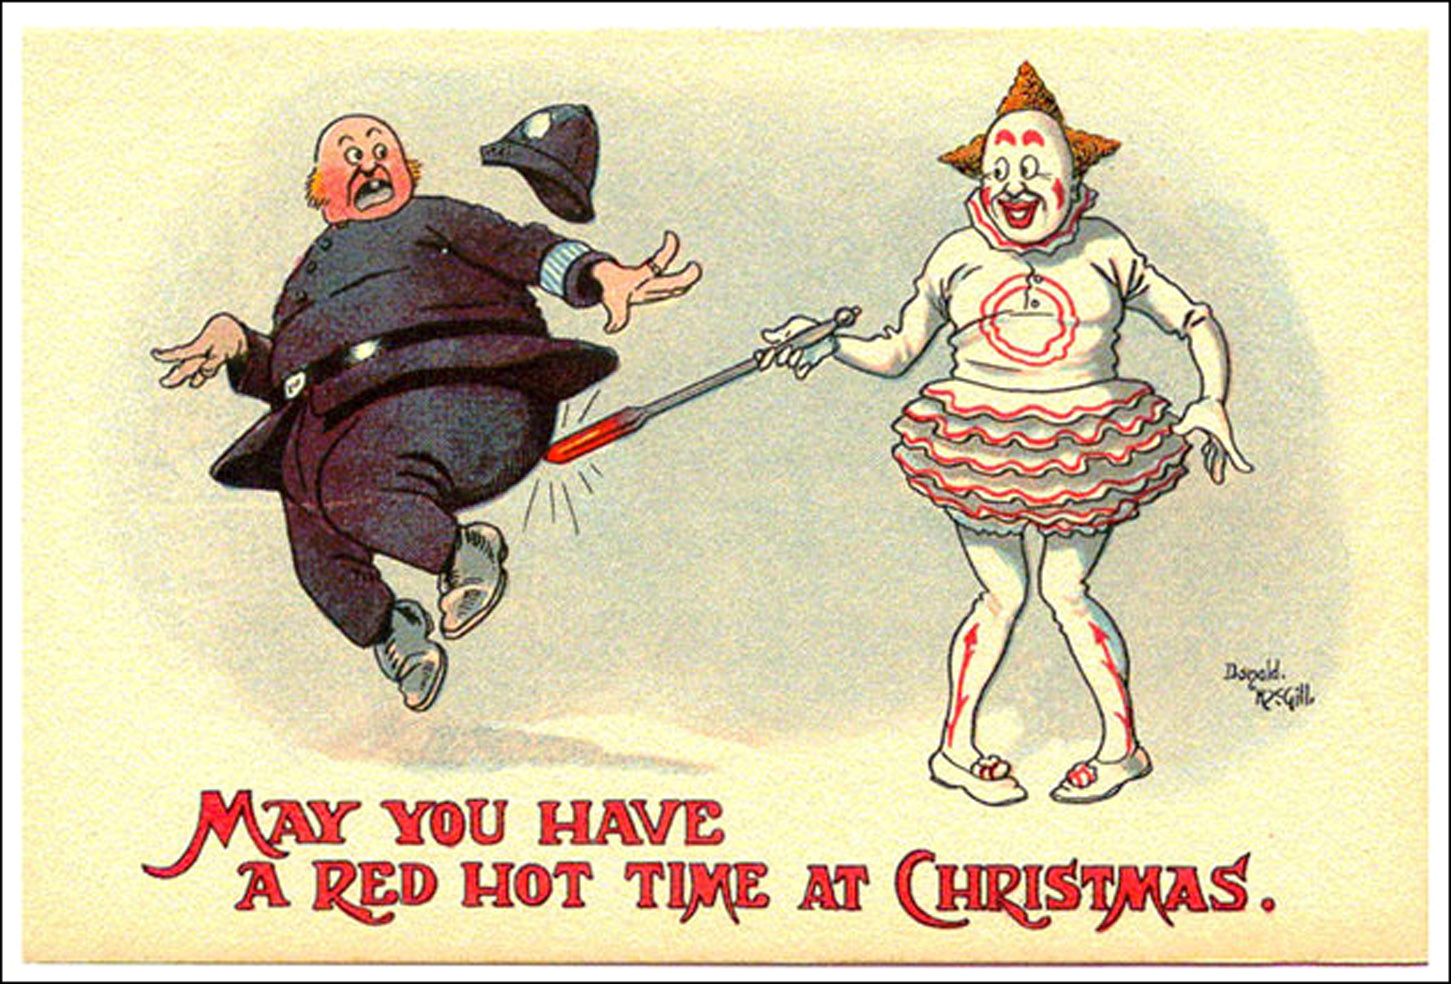 Clown touches policeman with red hot poker - by Donald-mcGill funny Christmas card